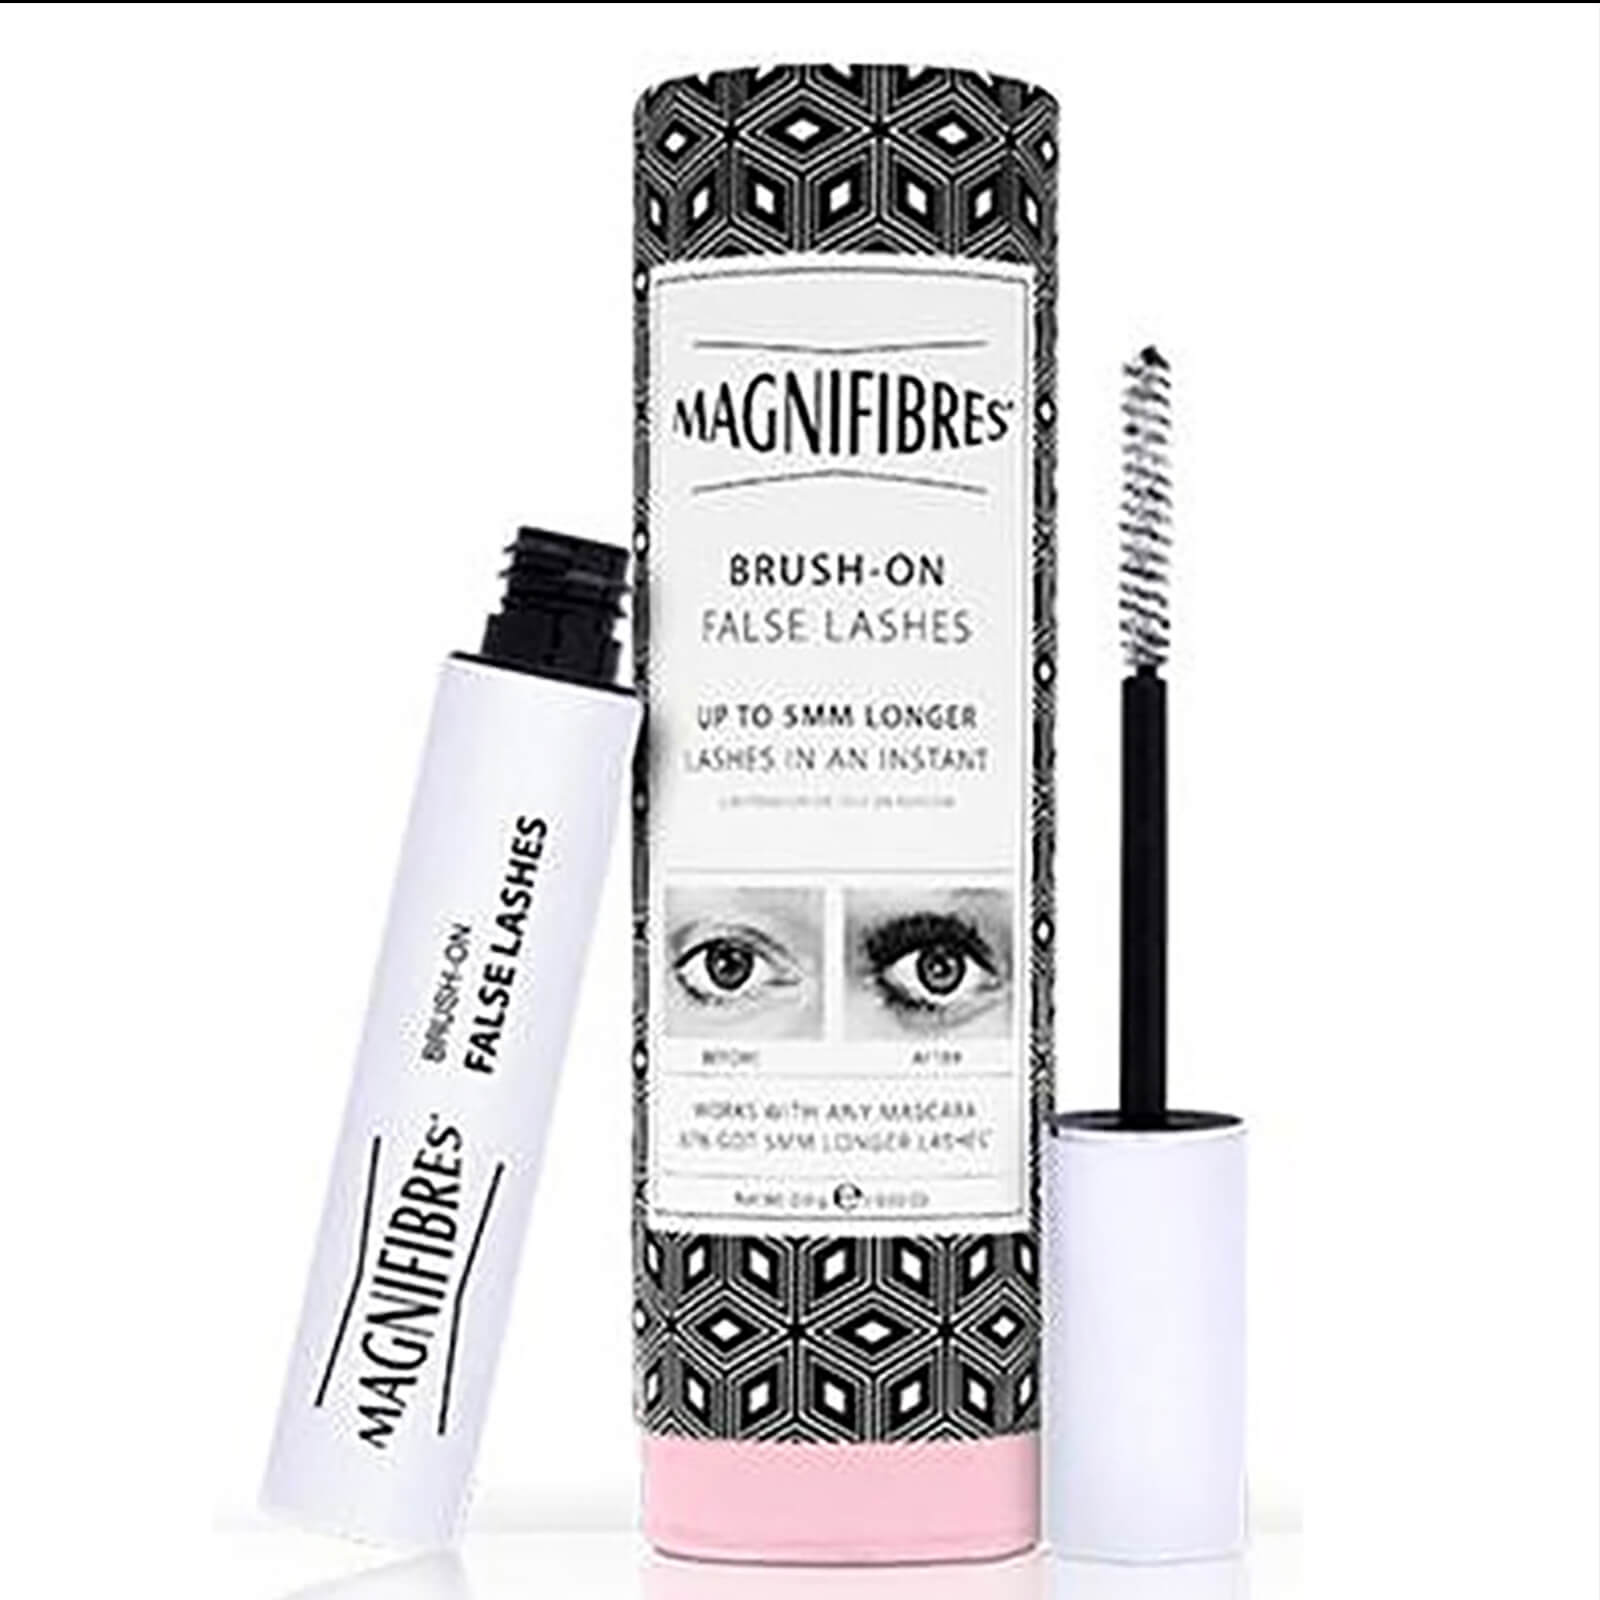 Magnifibres Brush On False Lashes Free Shipping Lookfantastic